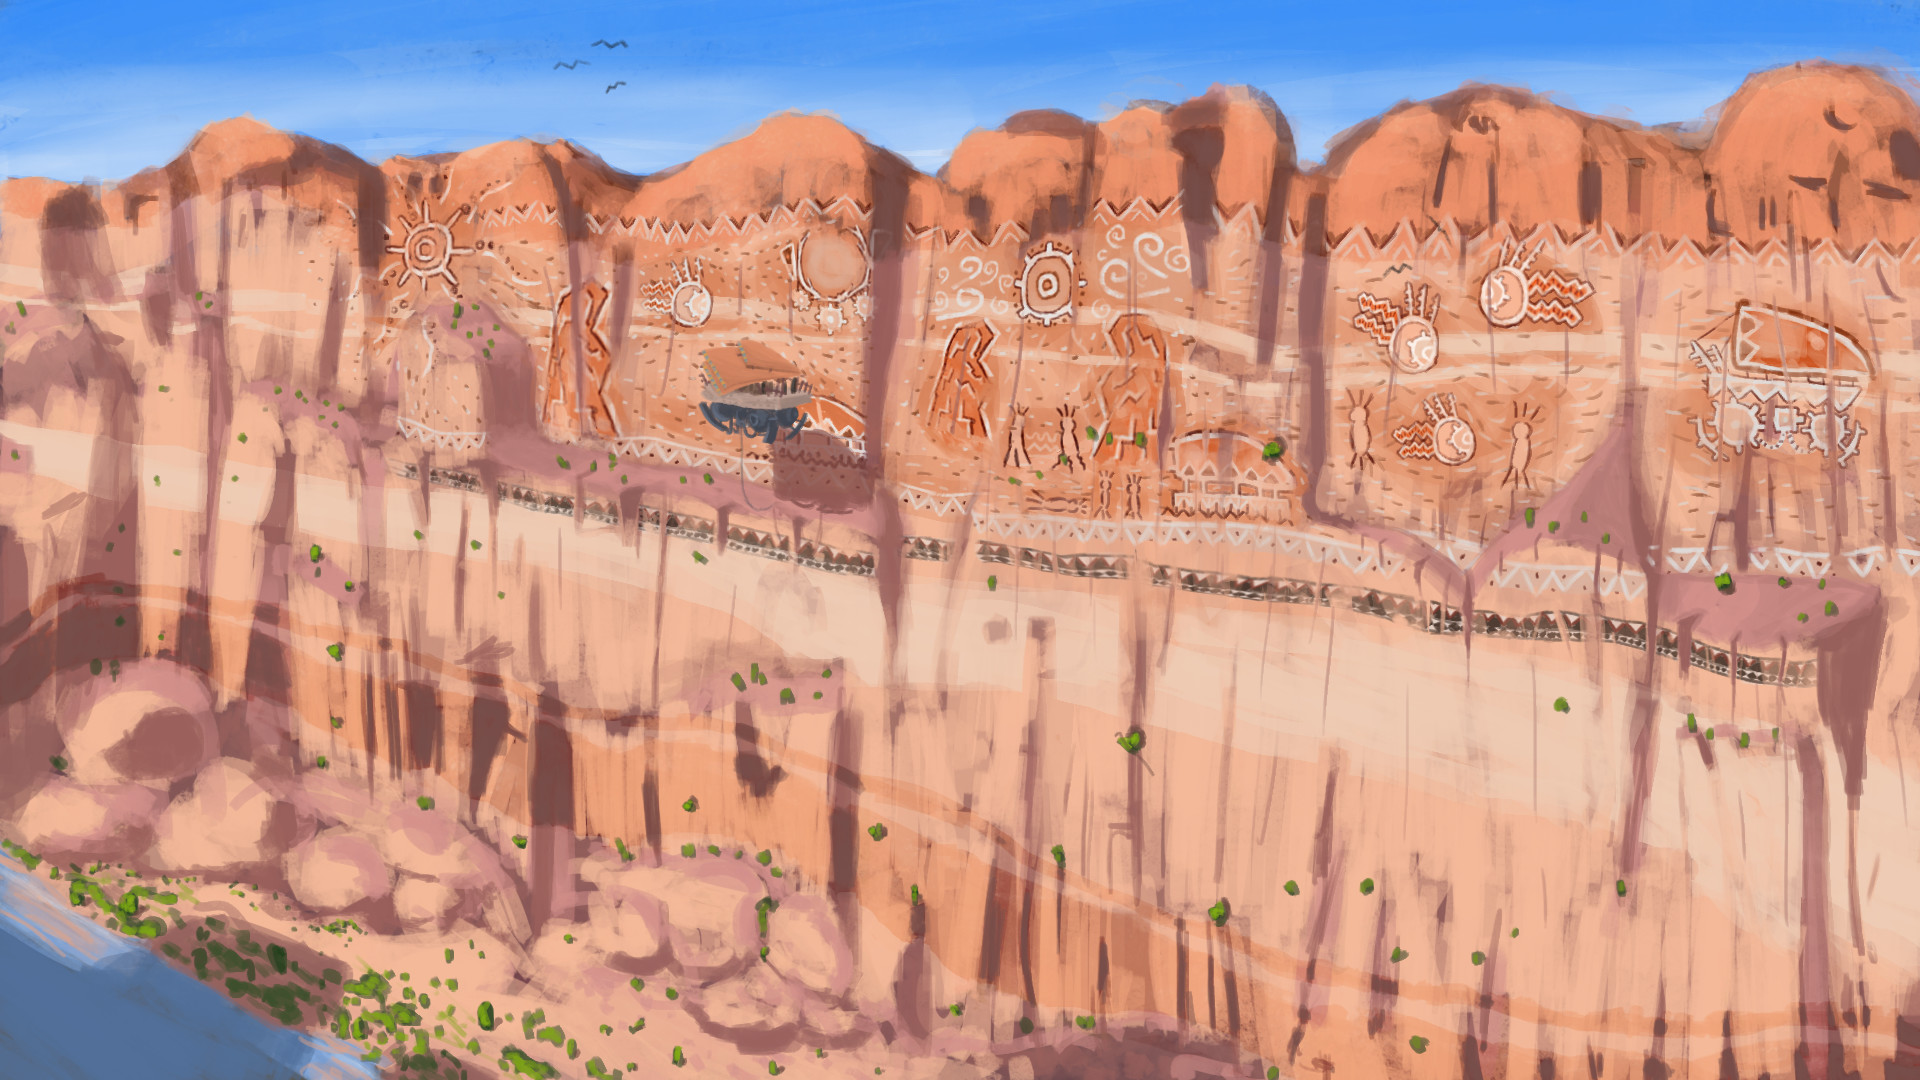 Final design and rendered out image of how the murals are placed in the environment.